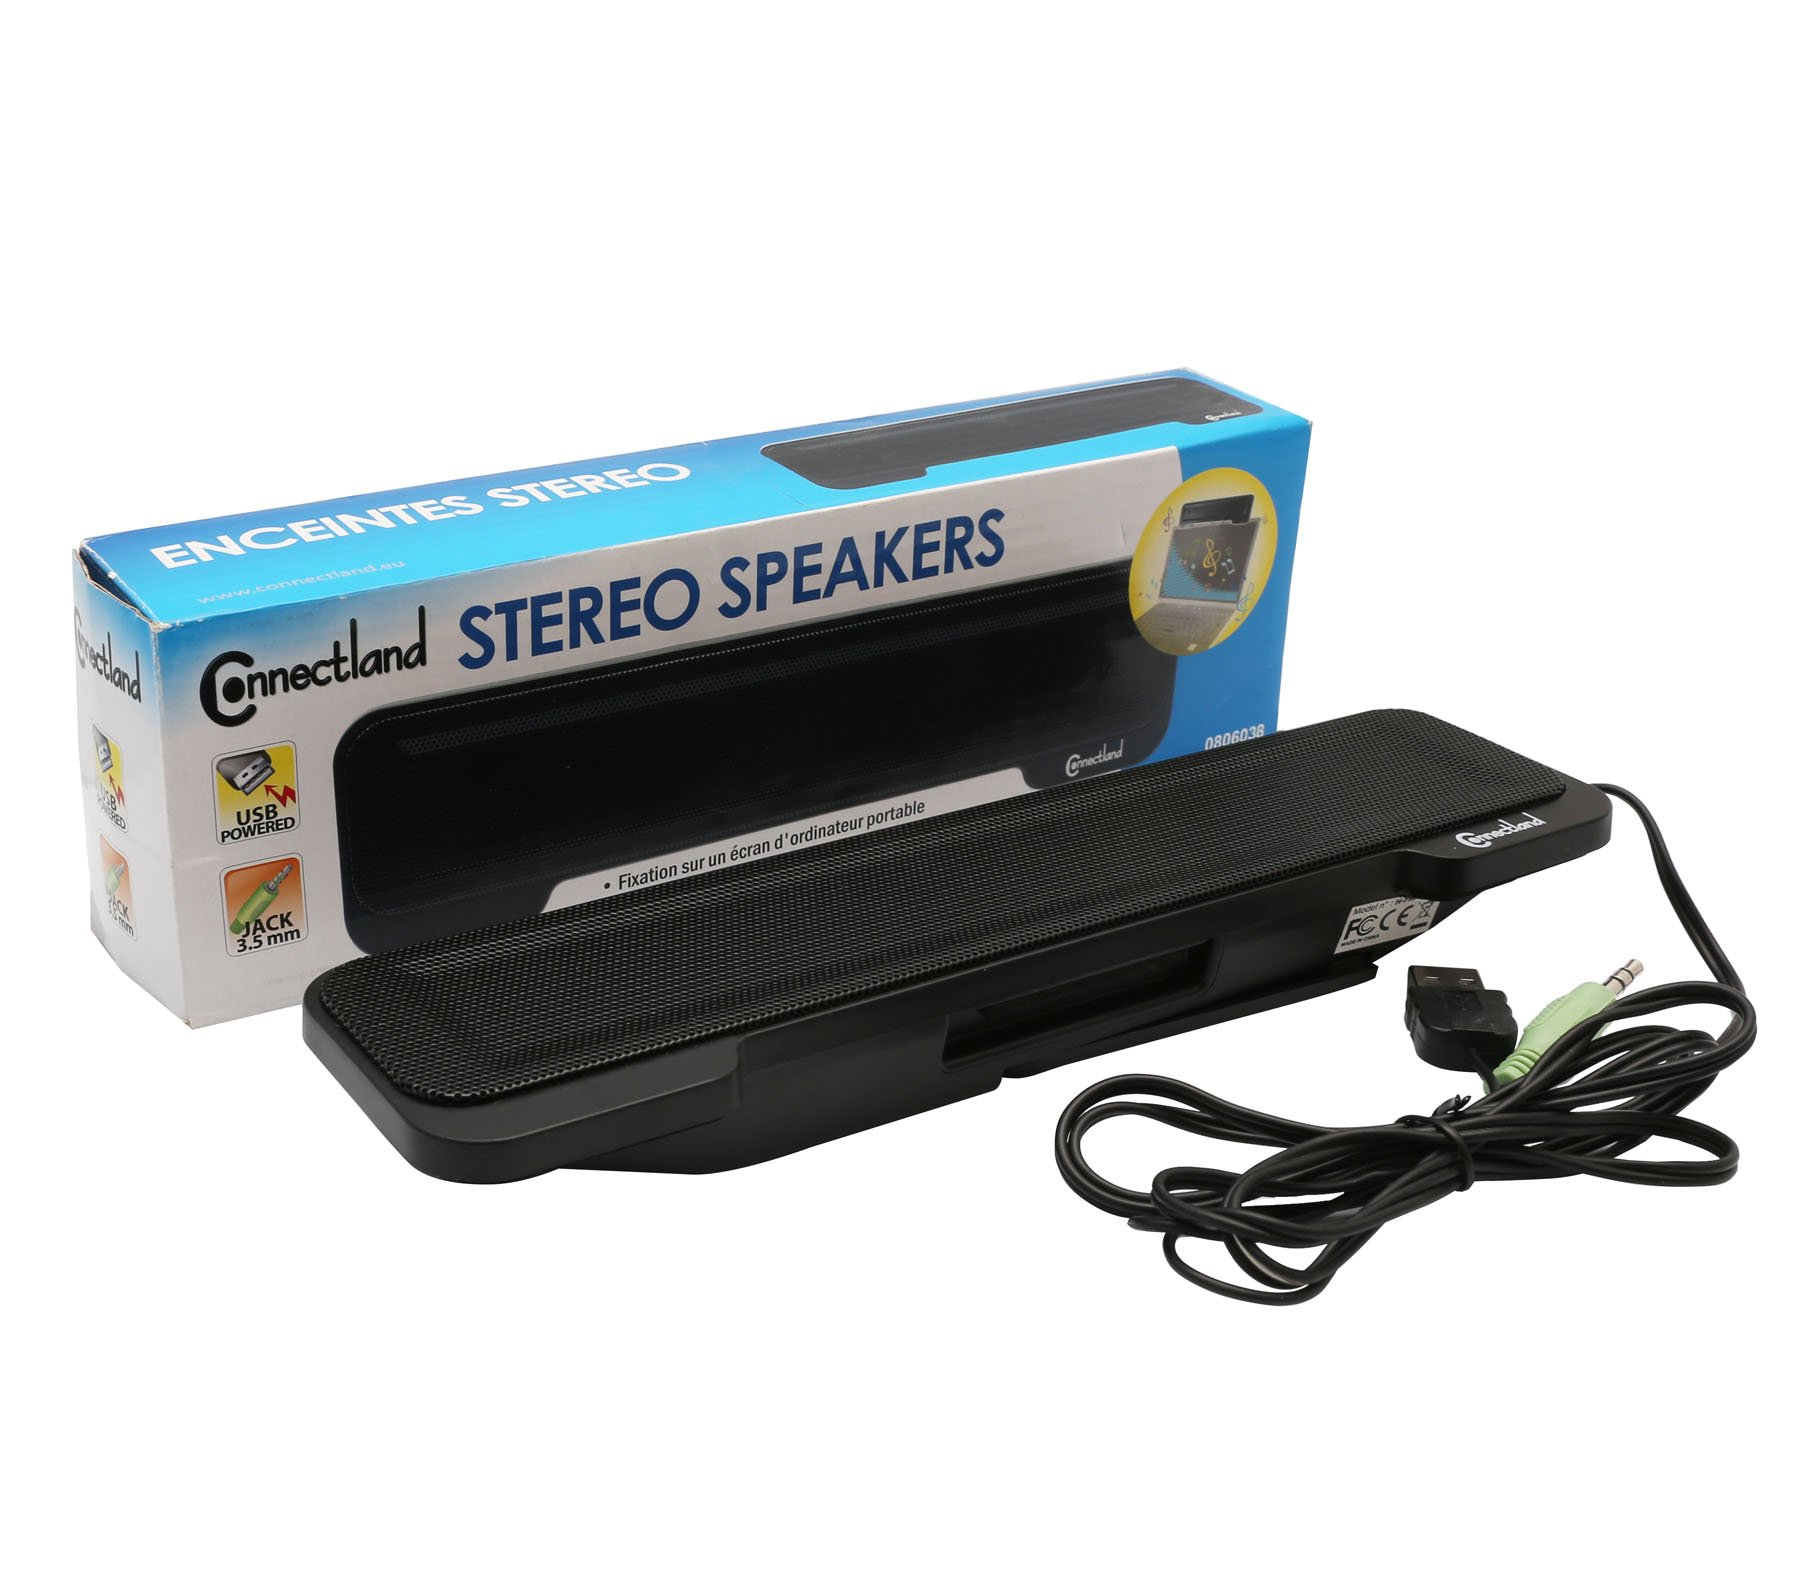 Connectland USB Powered Portable Stereo Sound Speaker Bar Mounts to Laptop Screen - CL-SPK20138 by Syba (Image #7)